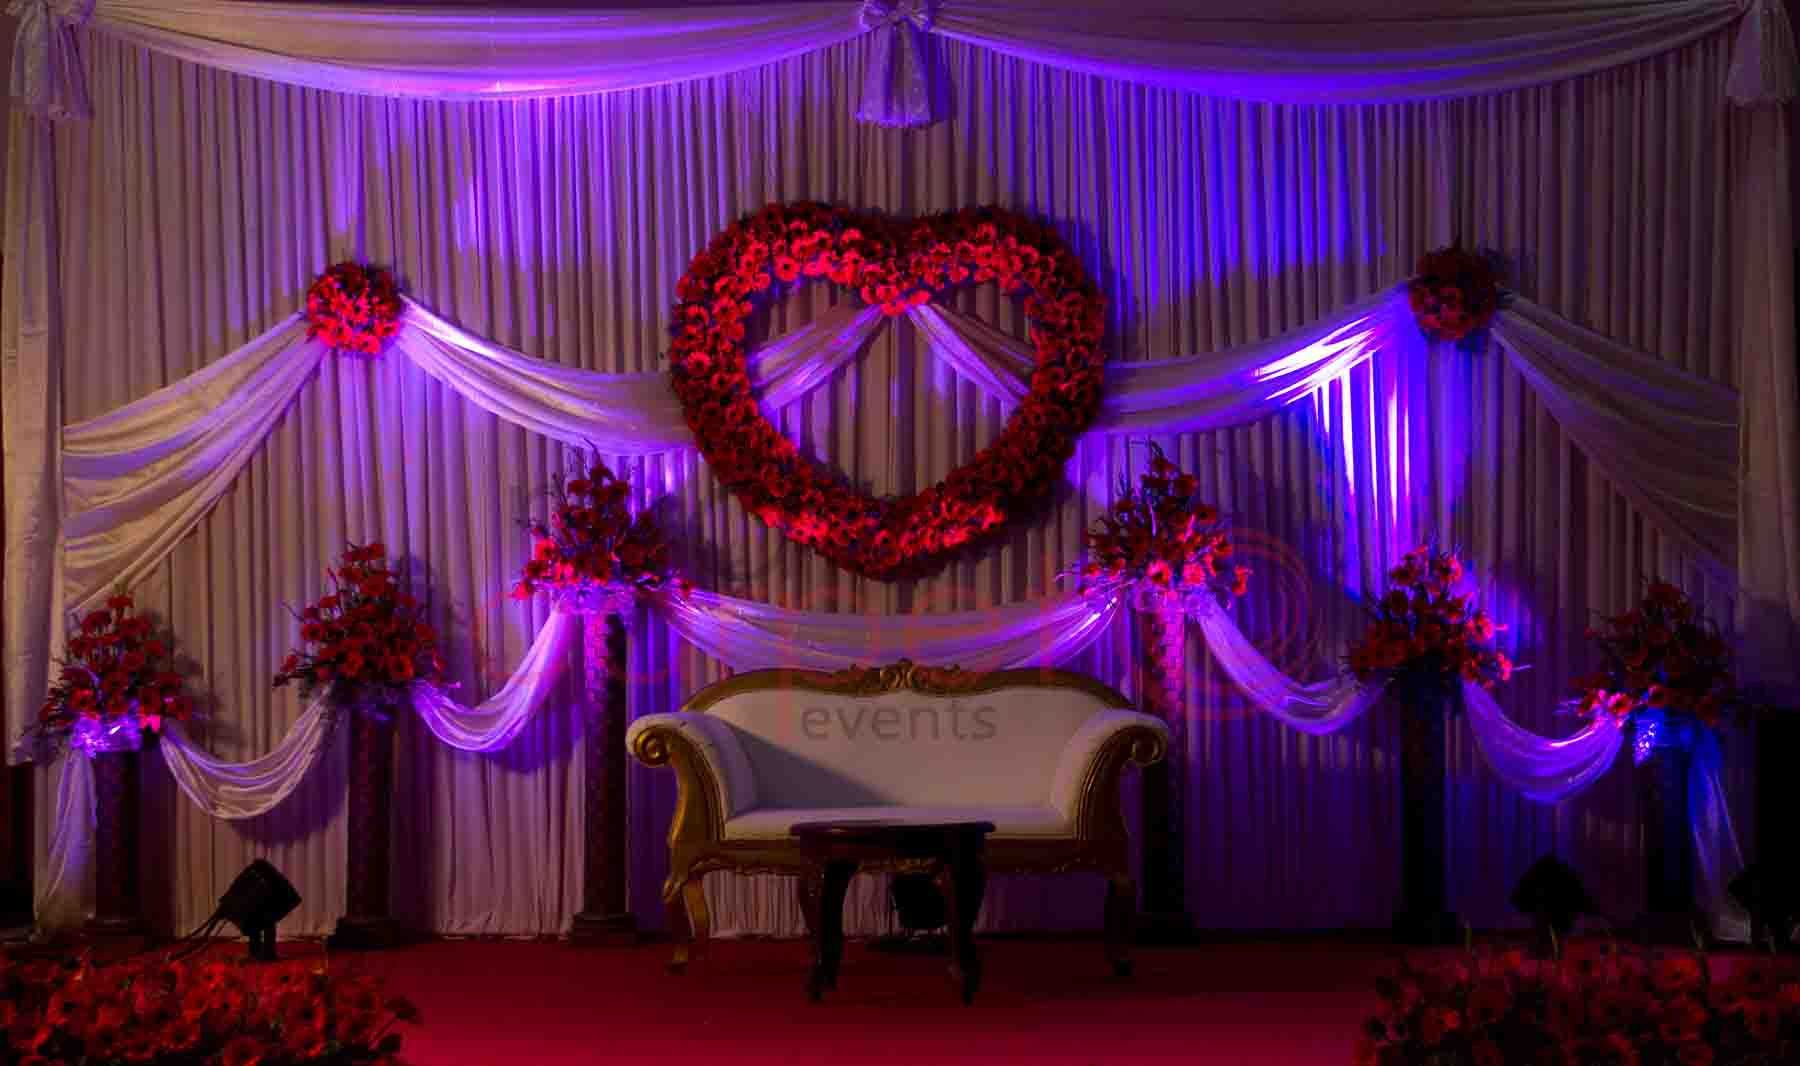 Indian wedding reception decorations valentine theme for Wedding reception room decoration ideas